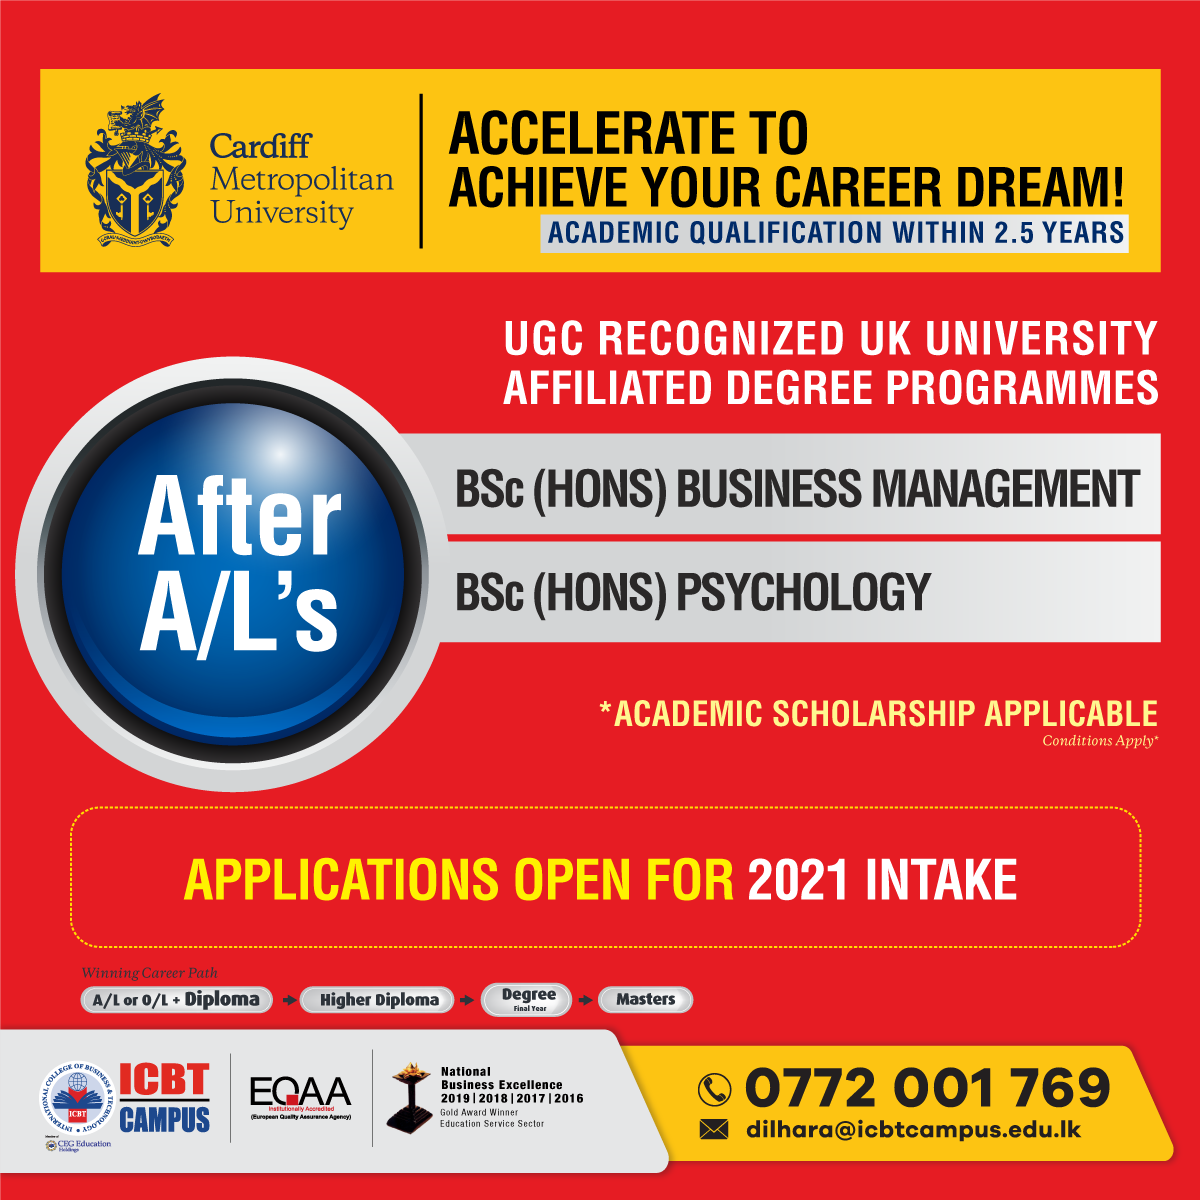 After A/Ls' - Accelerate To Achieve Your Career Dream !